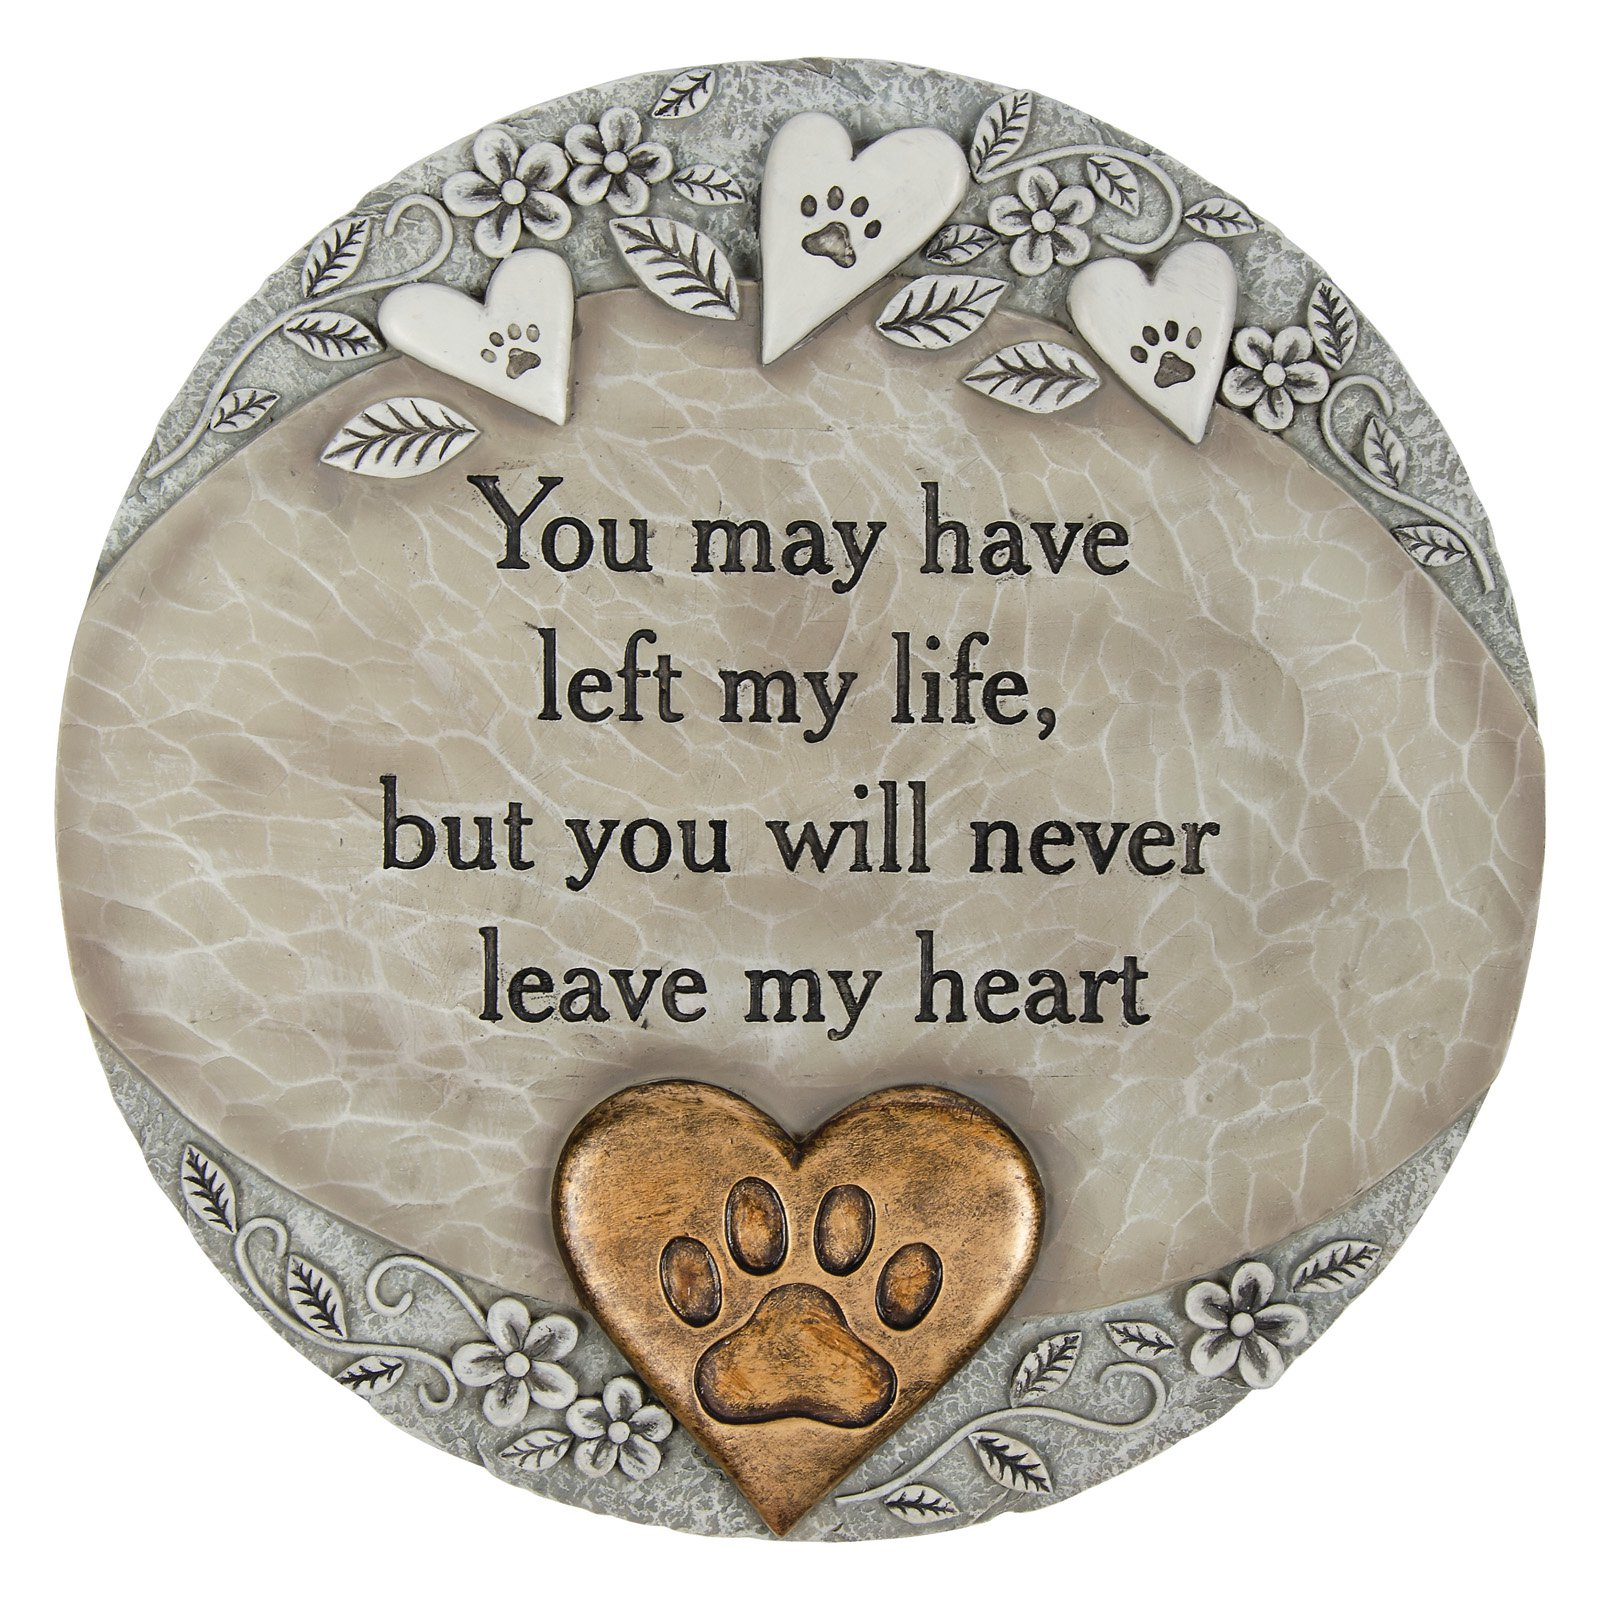 Carson Home Accents Pet Heart Garden Stone by CARSON HOME ACCENTS